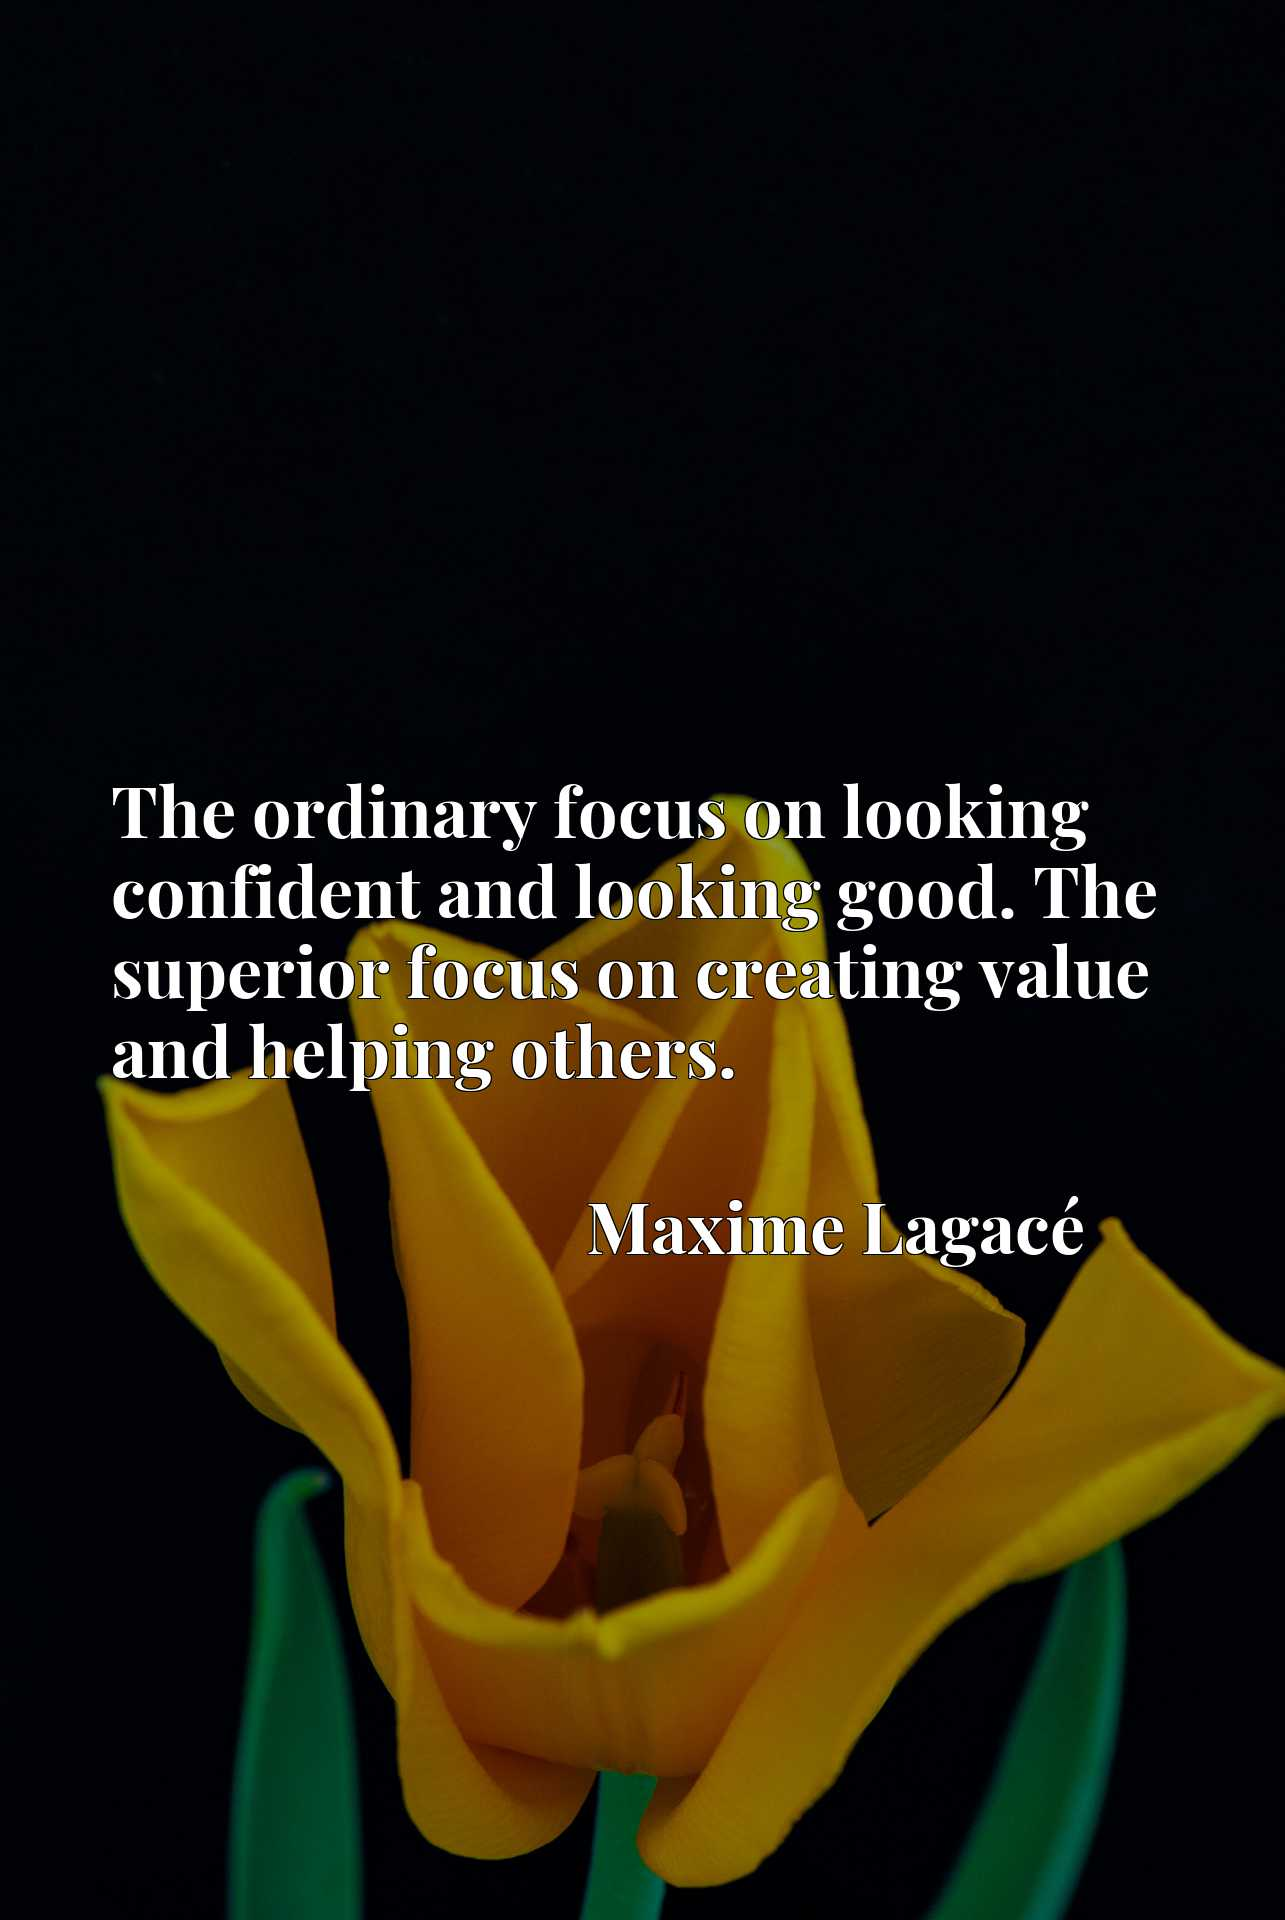 The ordinary focus on looking confident and looking good. The superior focus on creating value and helping others.